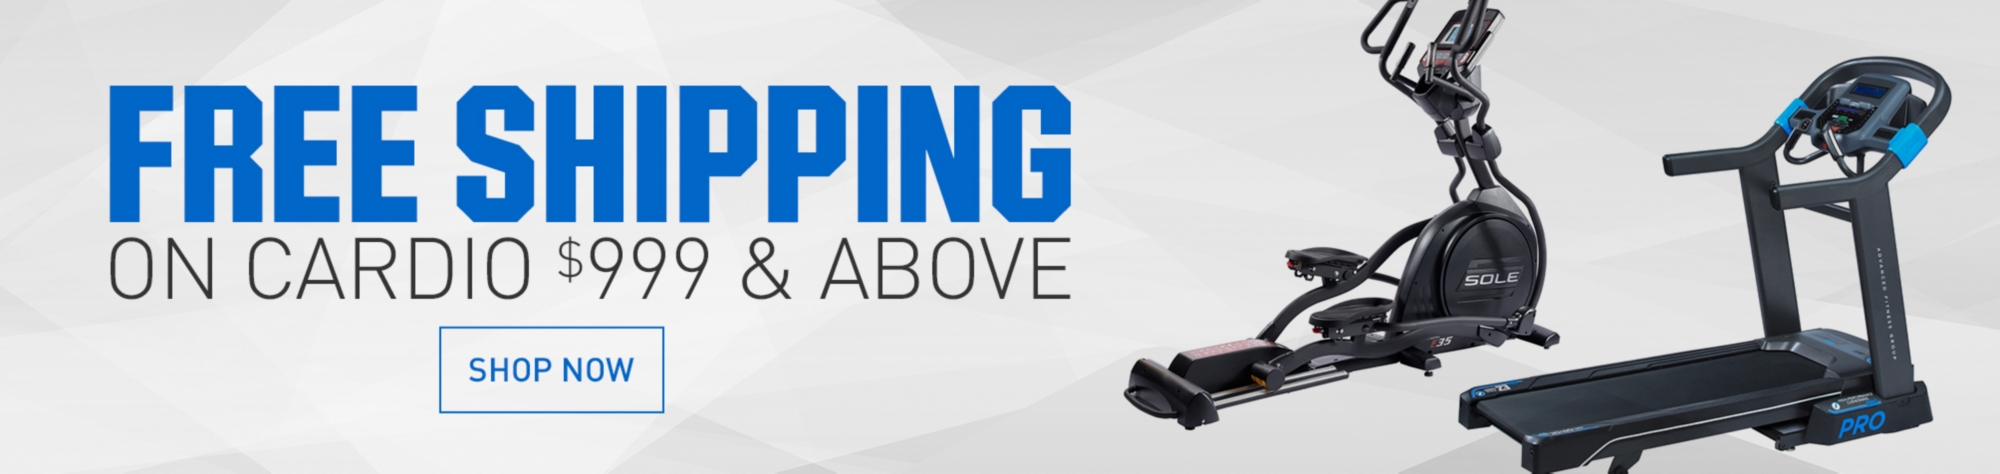 Free Shipping on Cardio $999 & Above